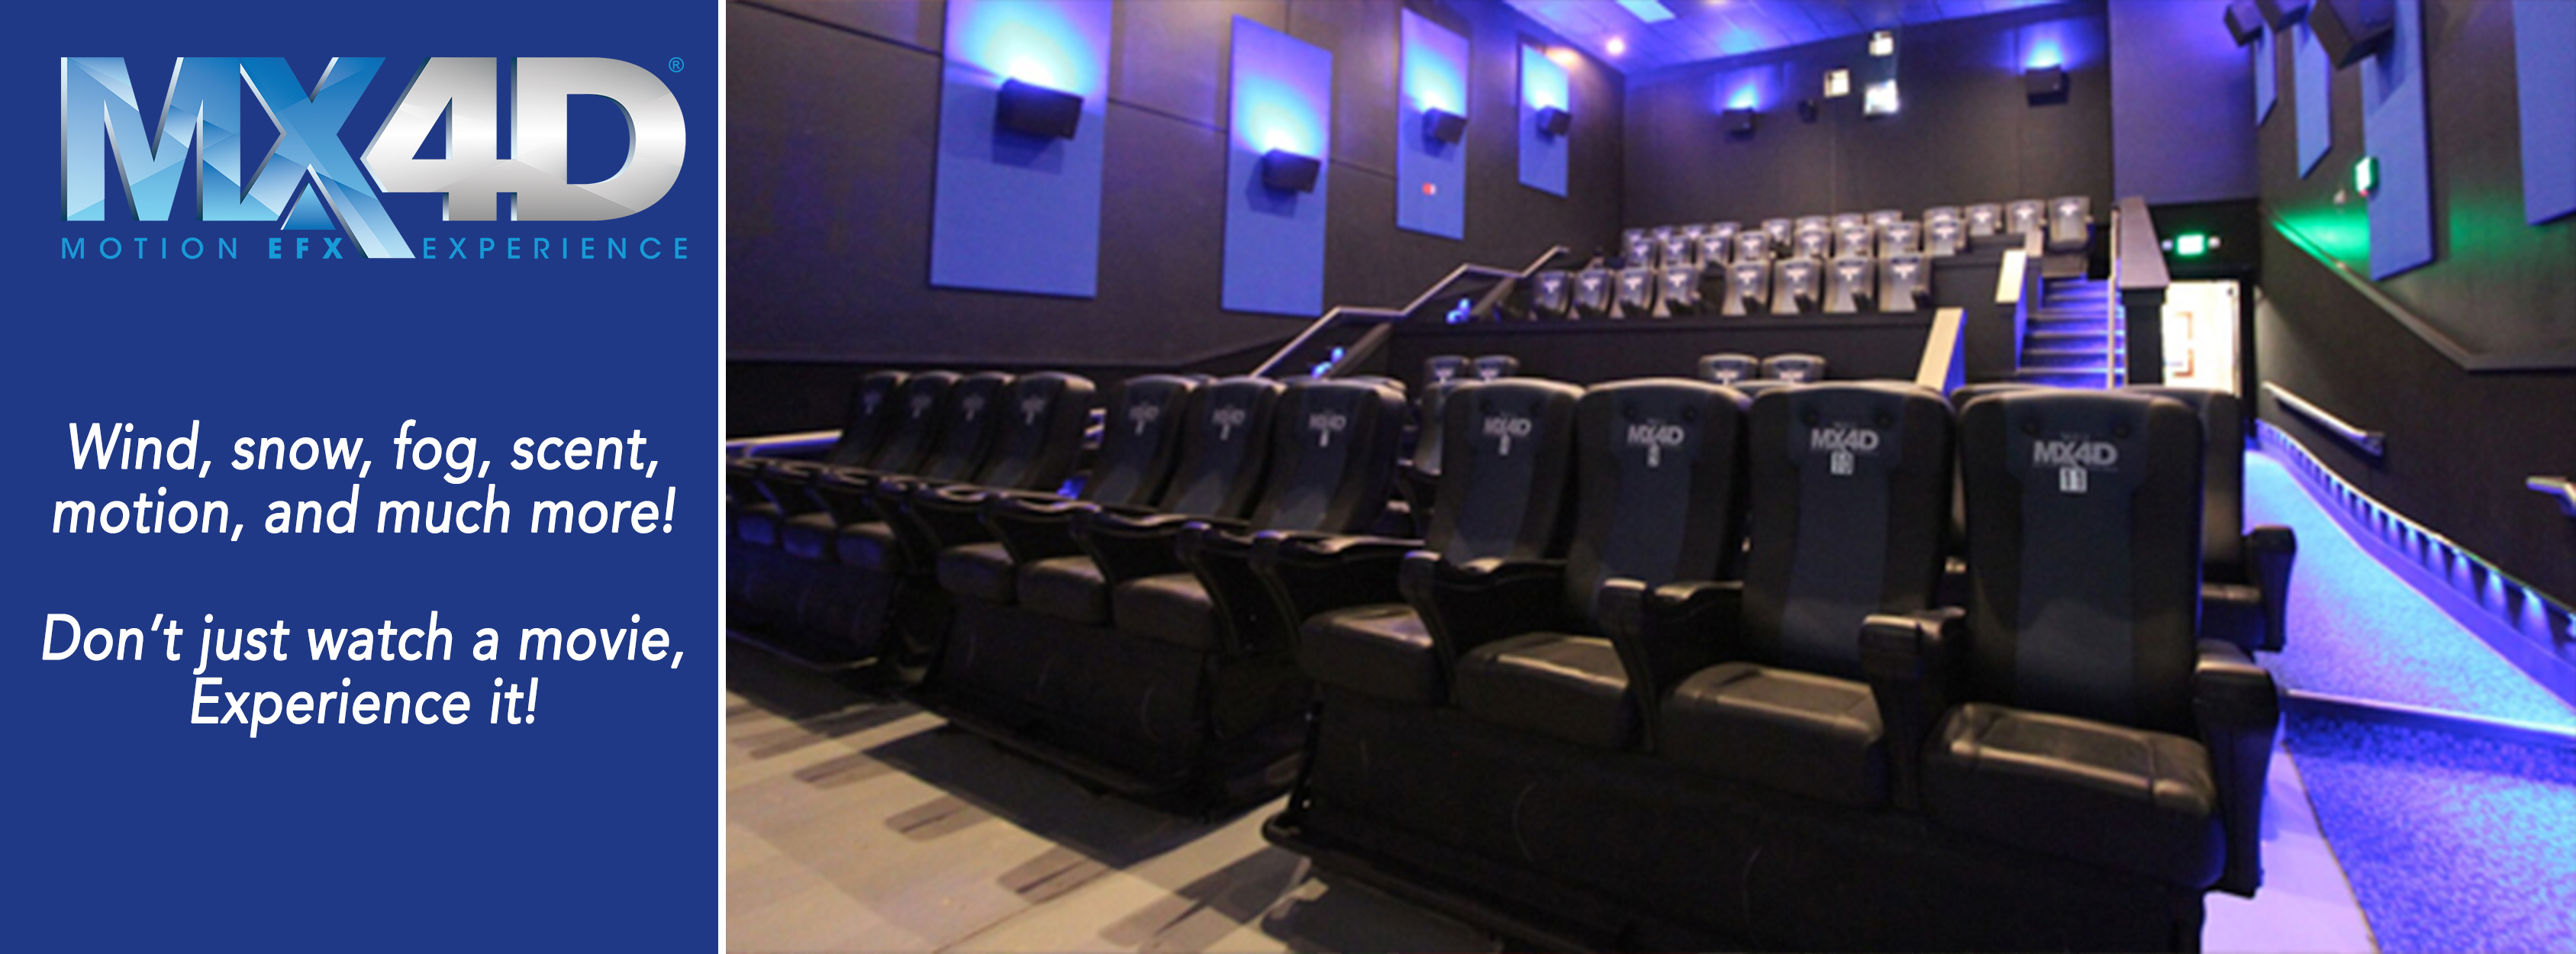 Photo 2 of Liberty Cinema 12 with Grand Screens®, MX4D®, ScreenX, screenPLAY! and Lyric!